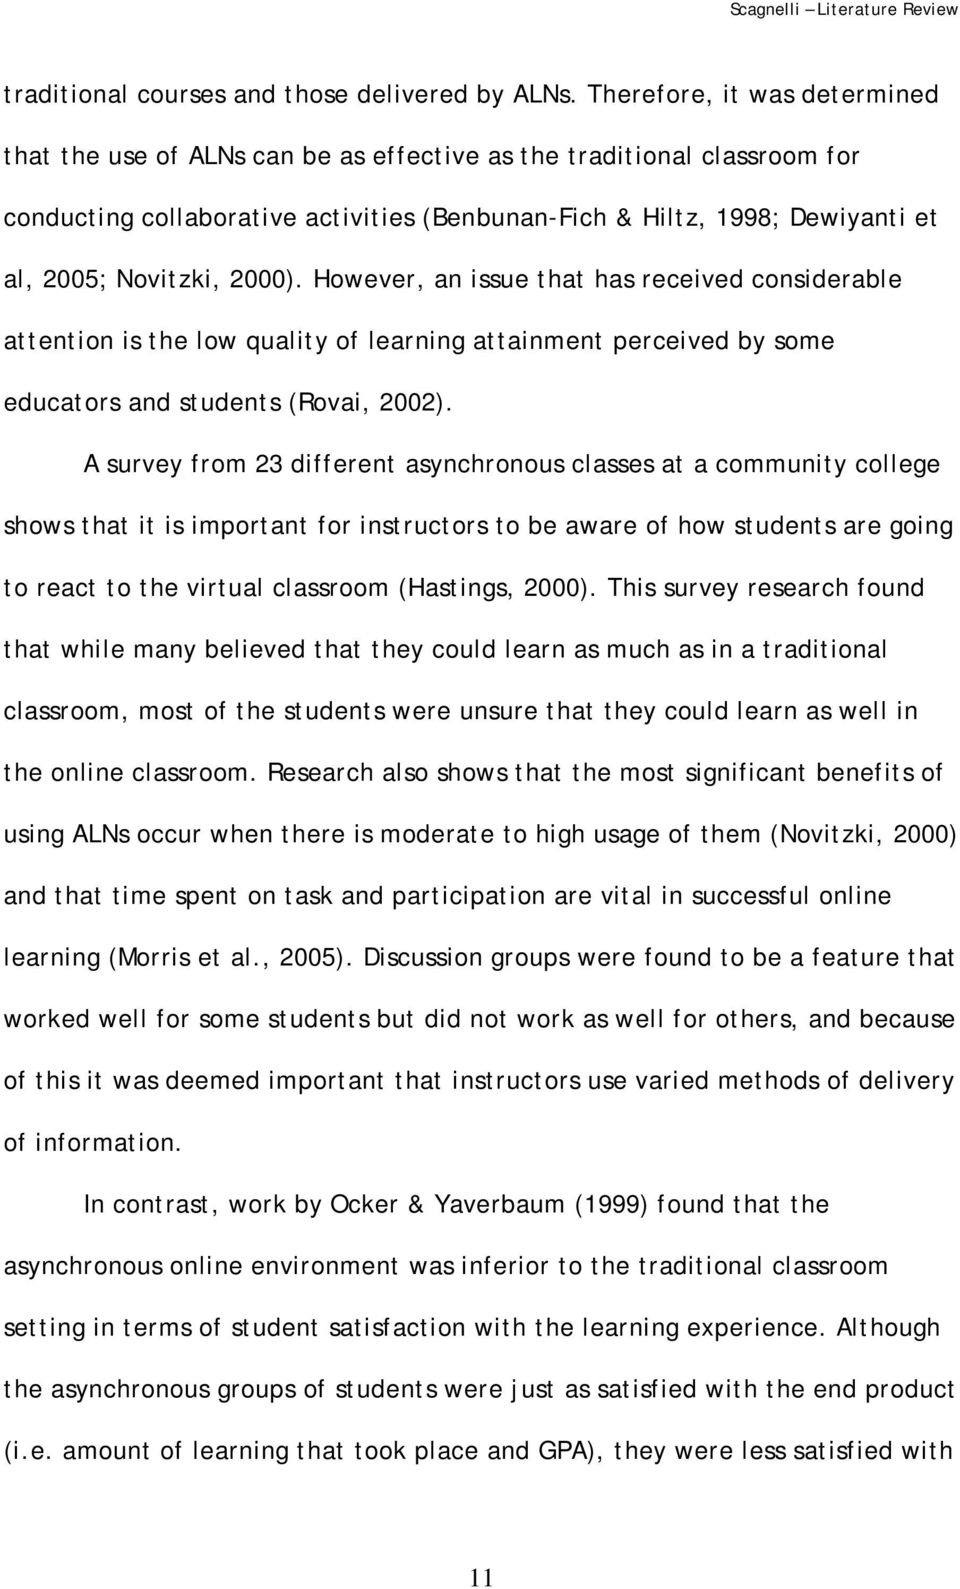 Novitzki, 2000). However, an issue that has received considerable attention is the low quality of learning attainment perceived by some educators and students (Rovai, 2002).